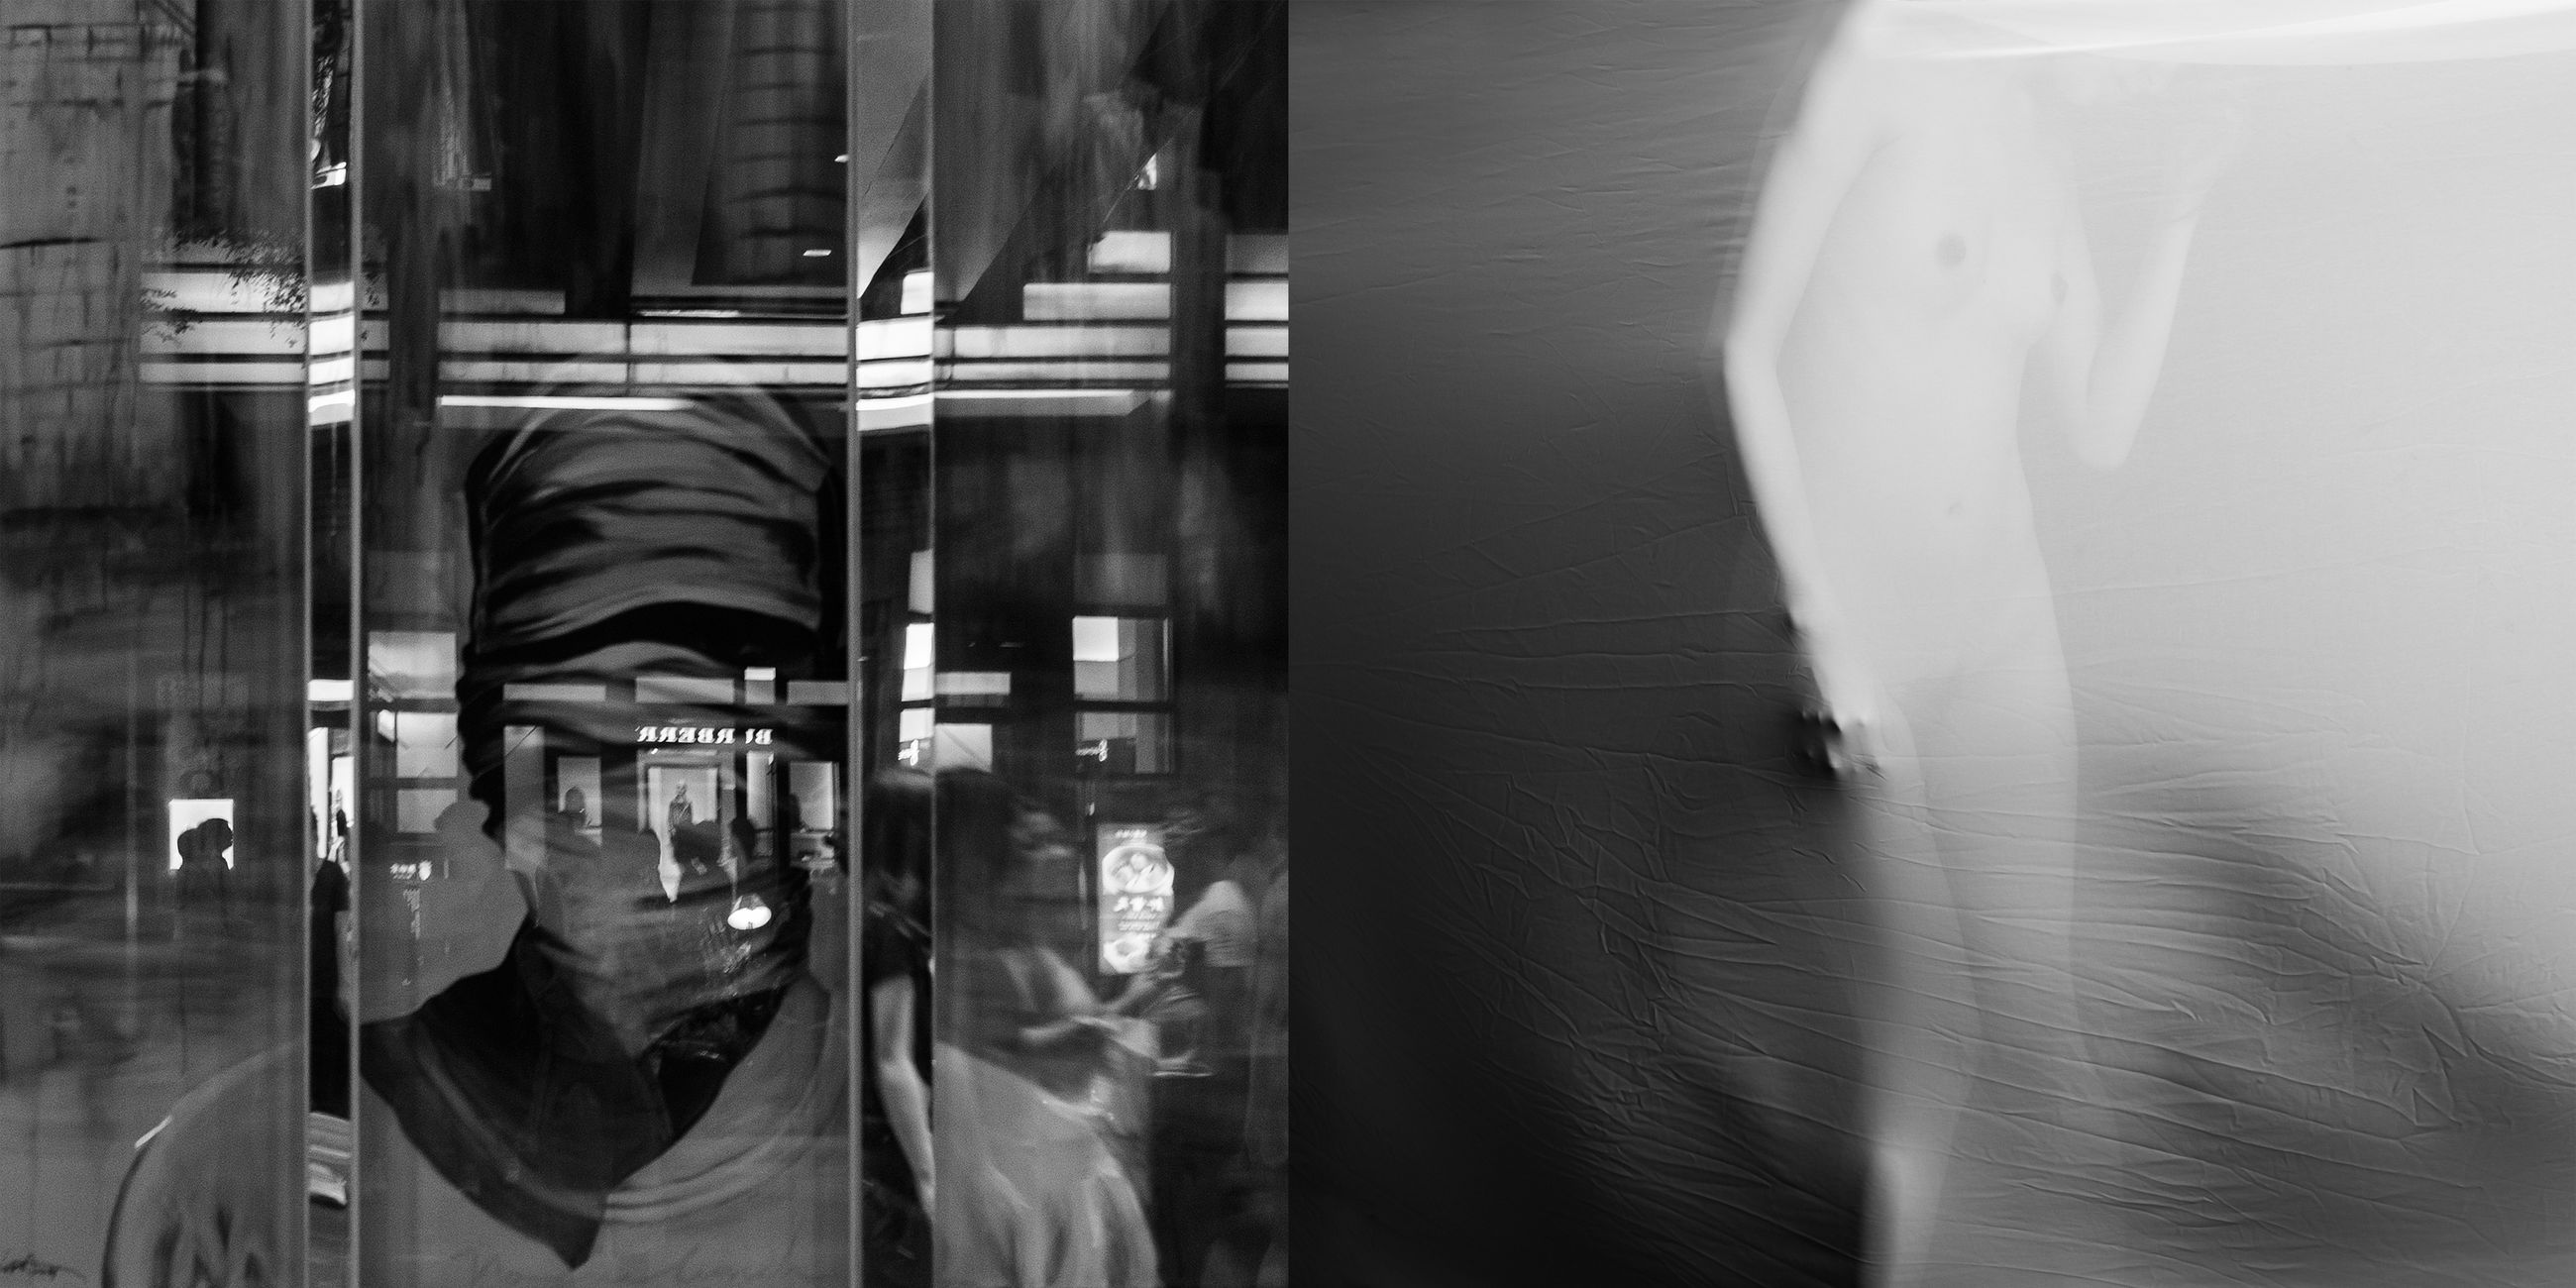 BLURRED MOTION OF PEOPLE STANDING BY WINDOW AT BUS